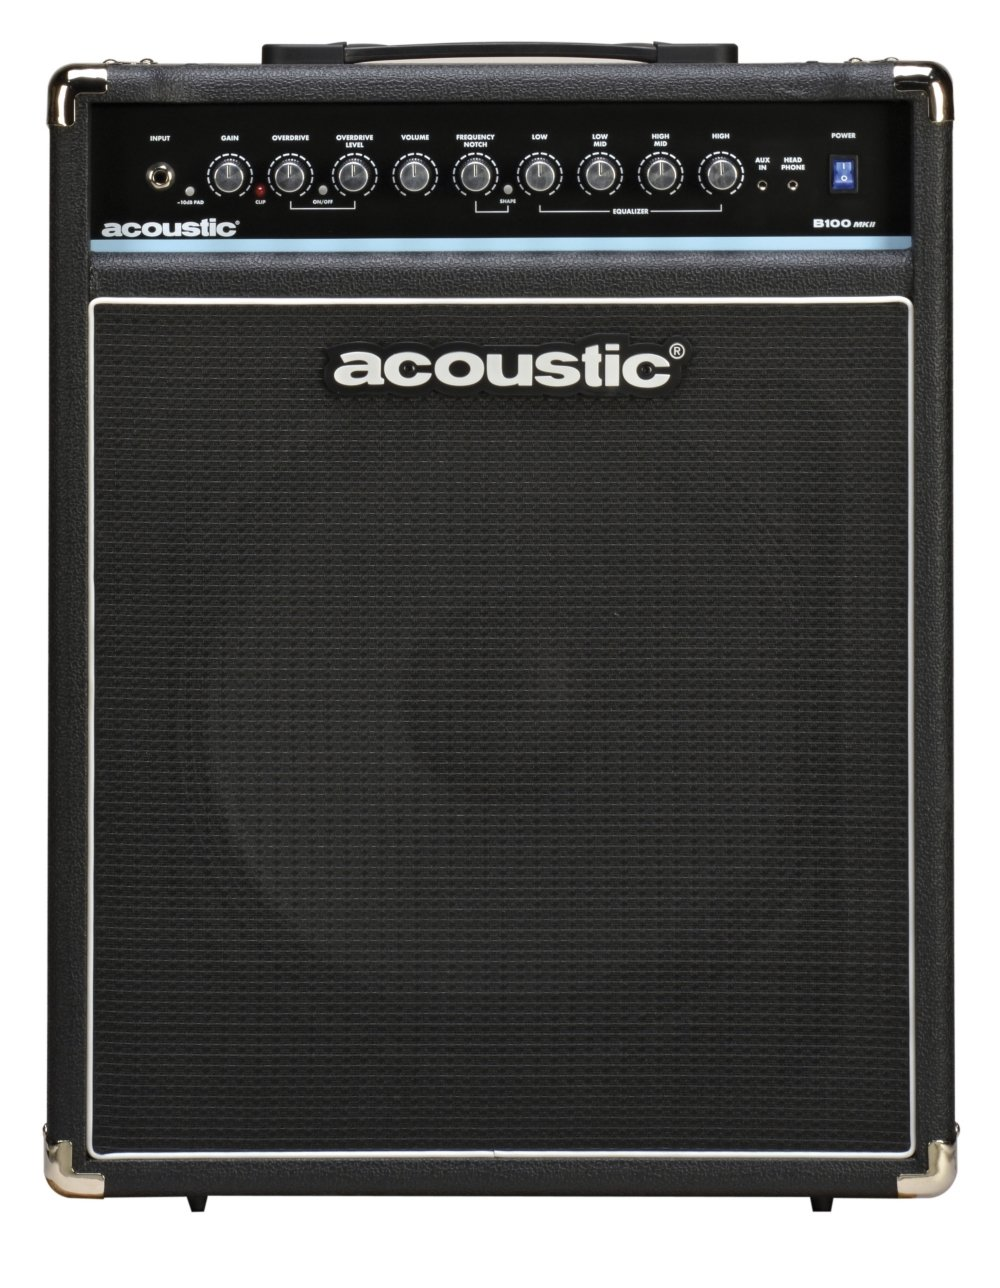 Top 6 Best Cheap Acoustic Bass Combo Amplifiers (2019 Reviews) 1